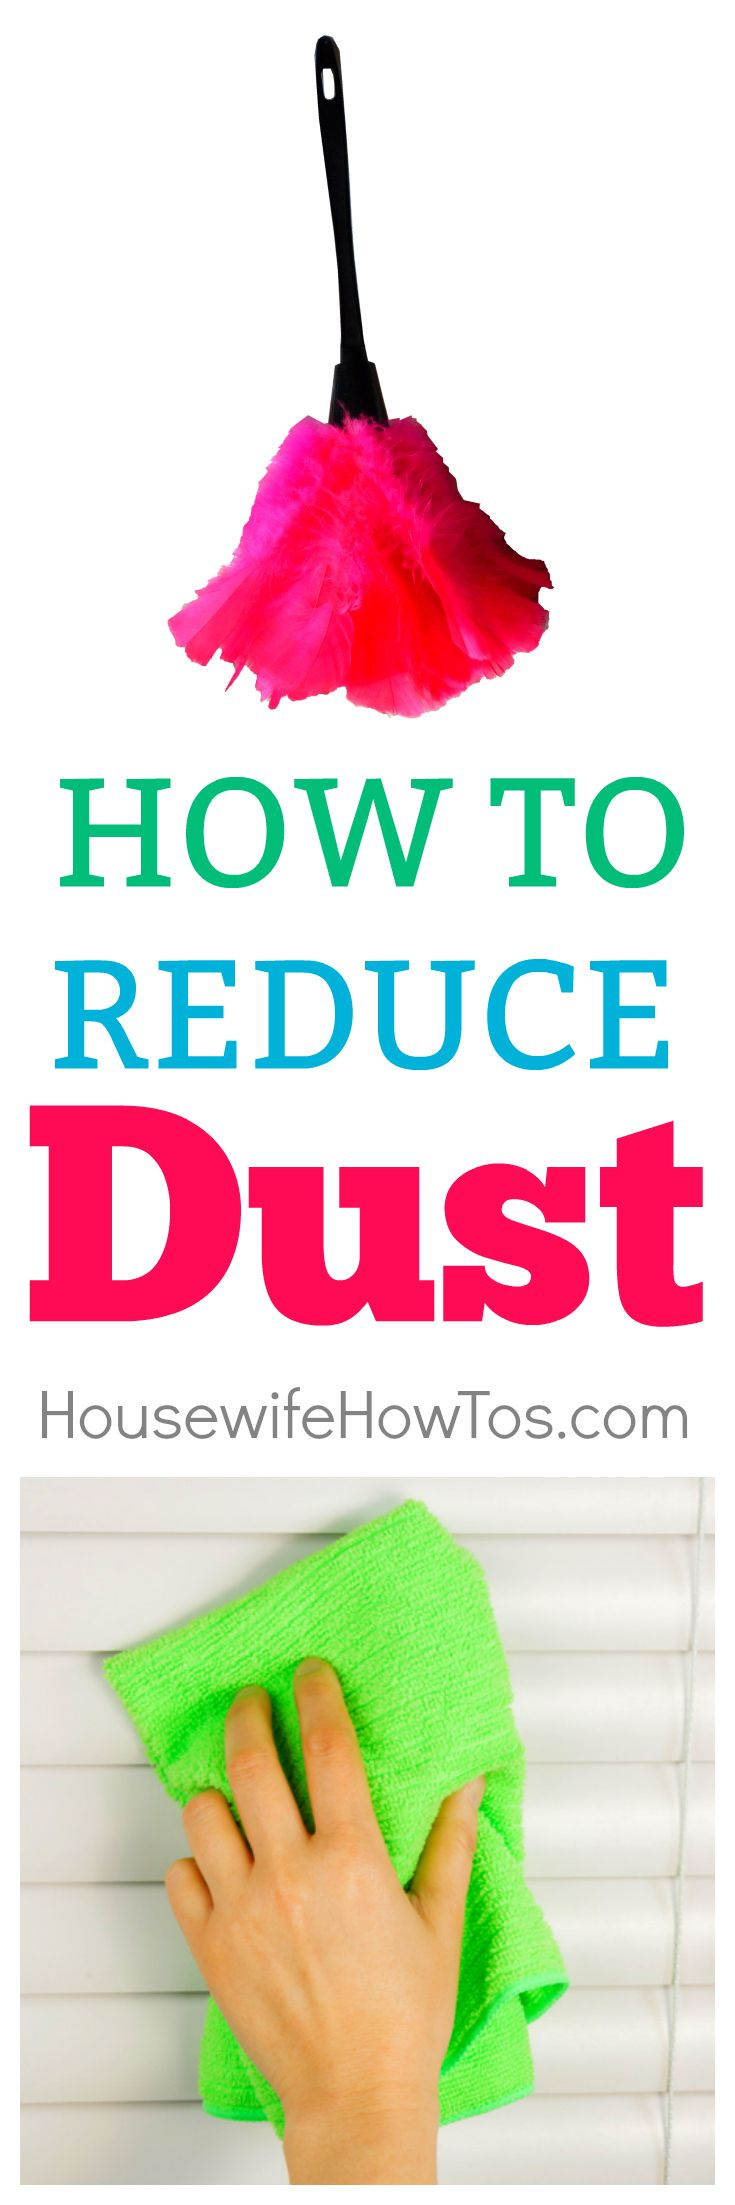 How to Reduce Dust - 7 tips that REALLY work.